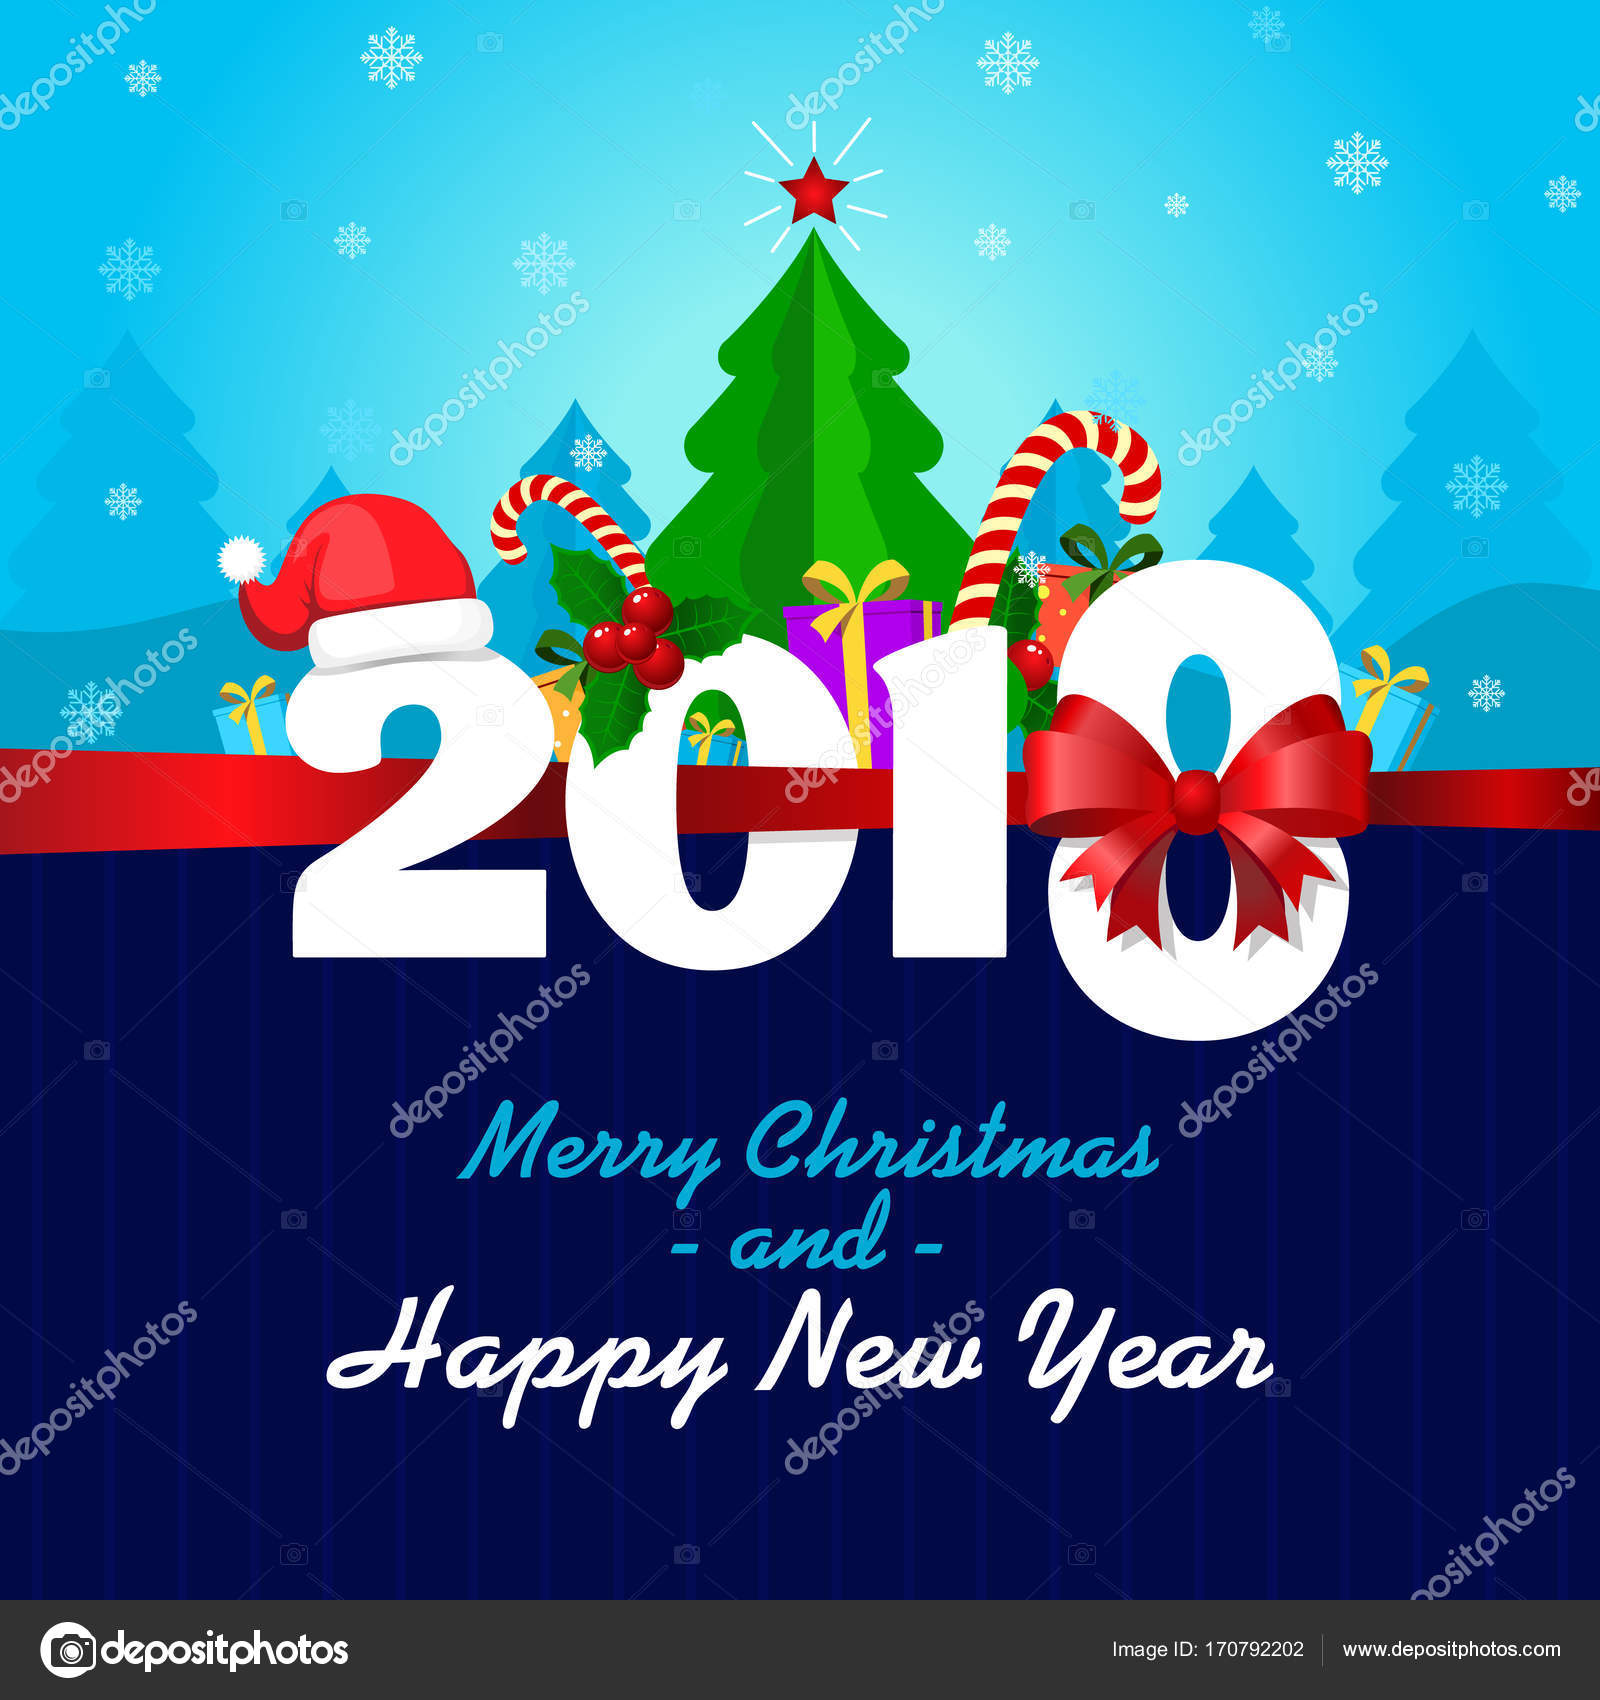 Greeting Card With Merry Christmas And A Happy New Year Merry 2018